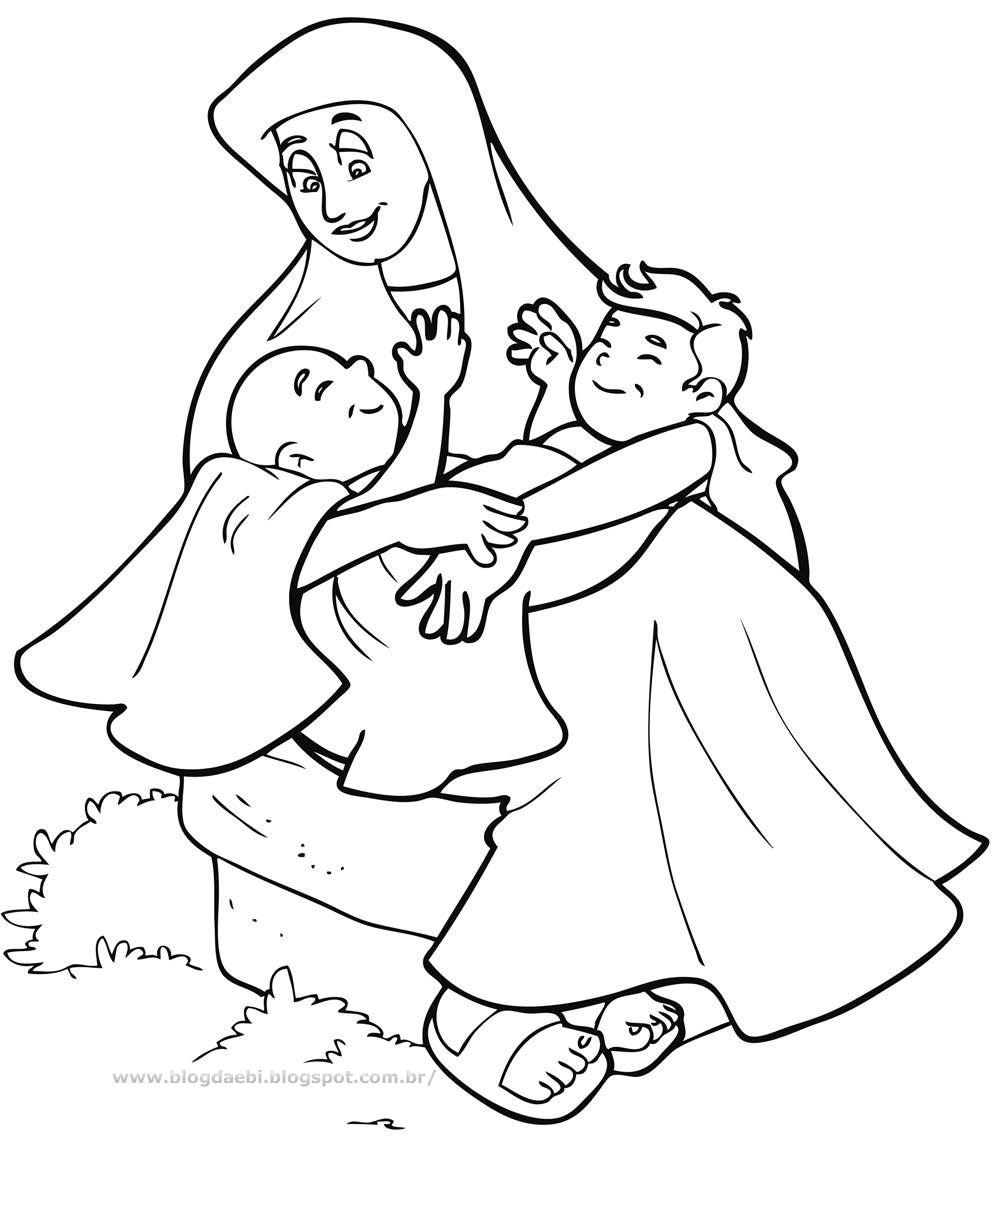 jacob meets esau coloring pages - photo#43